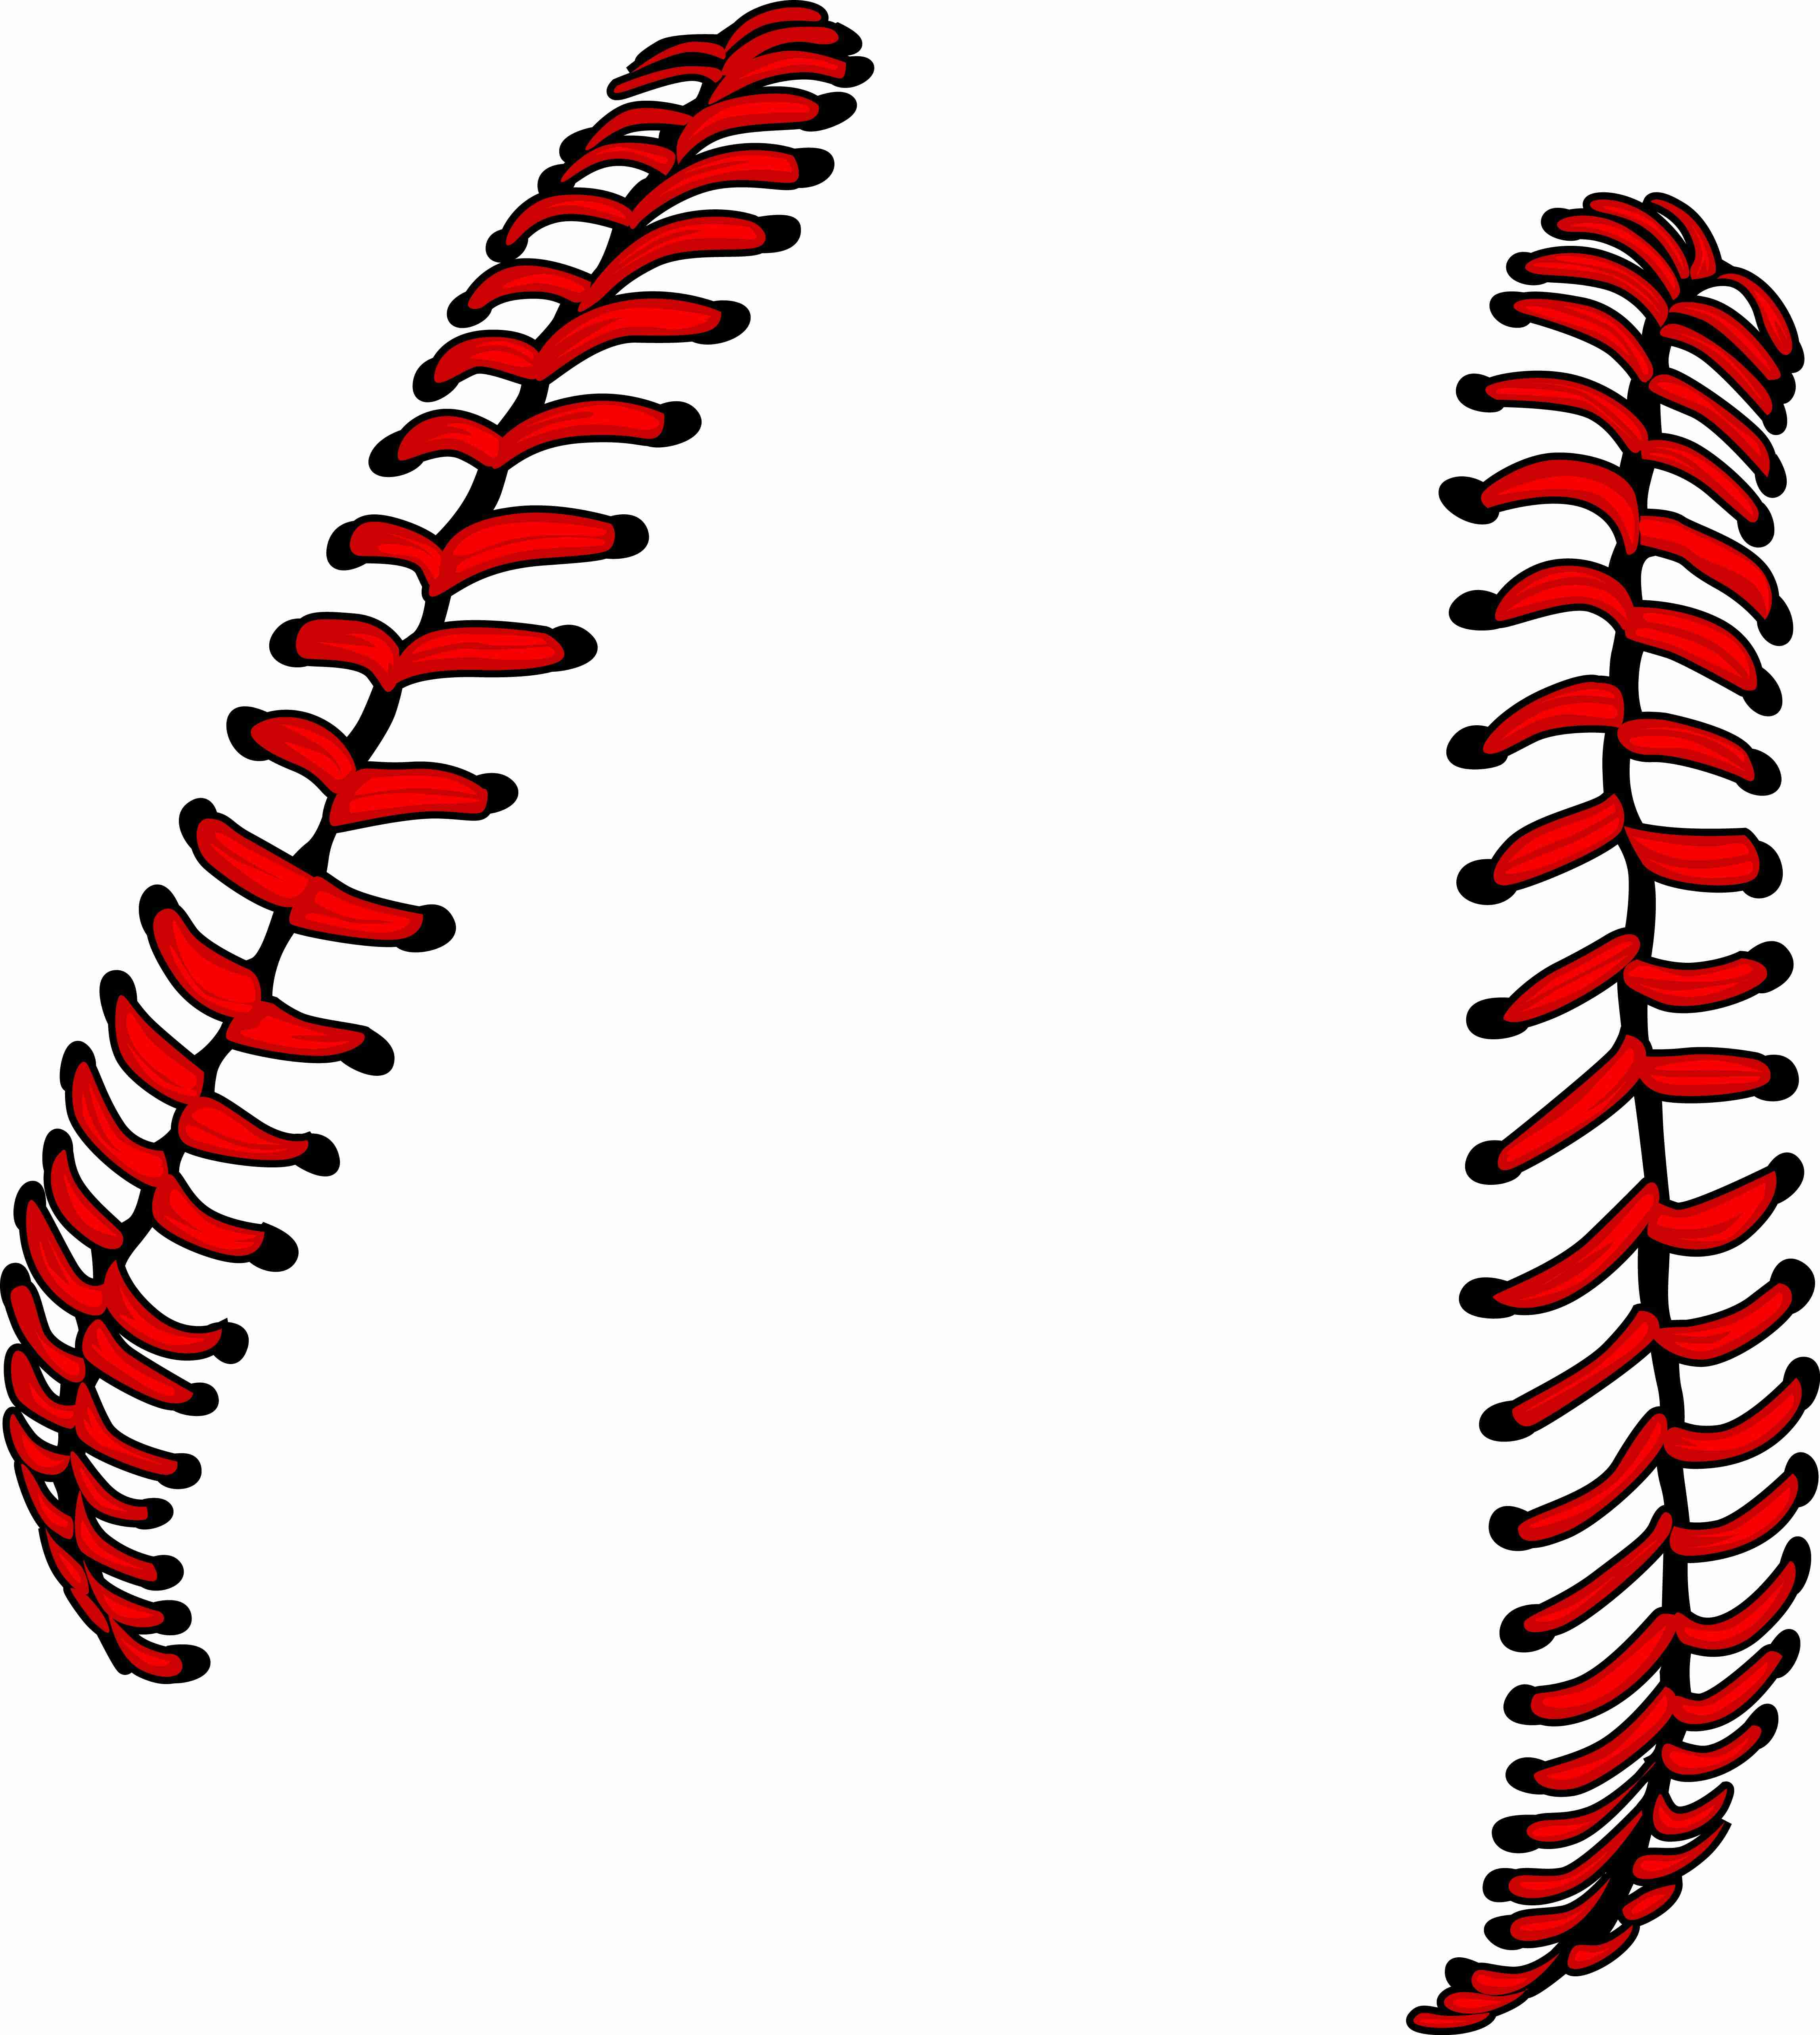 Softball Laces or Baseball Laces Vector Illustration